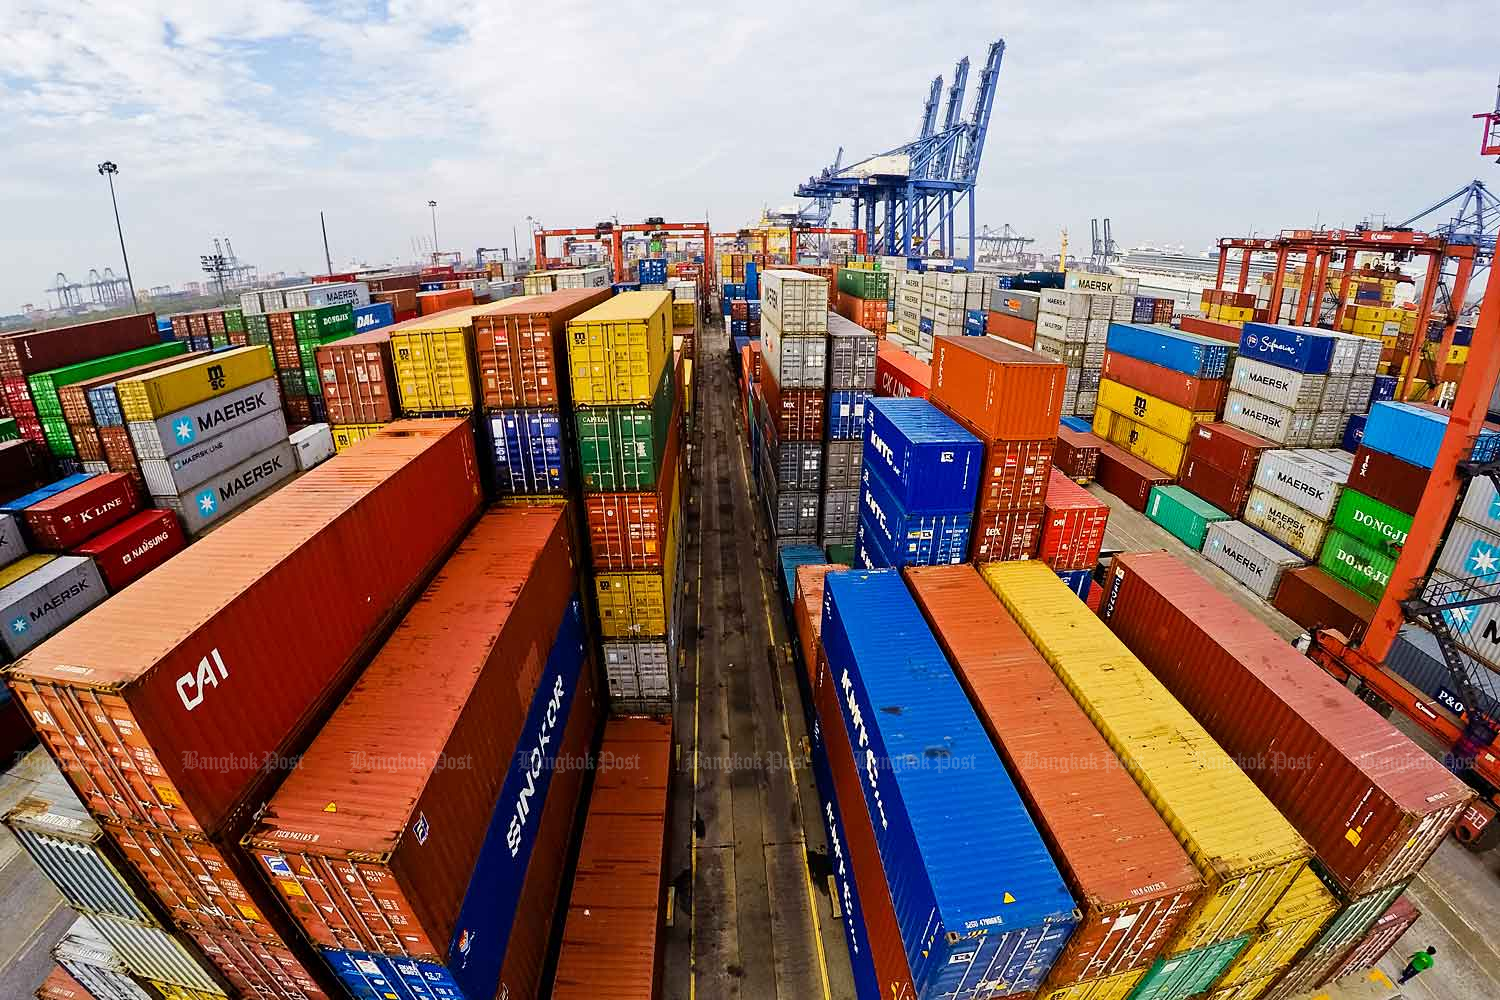 AoT aims to double cargo handling income